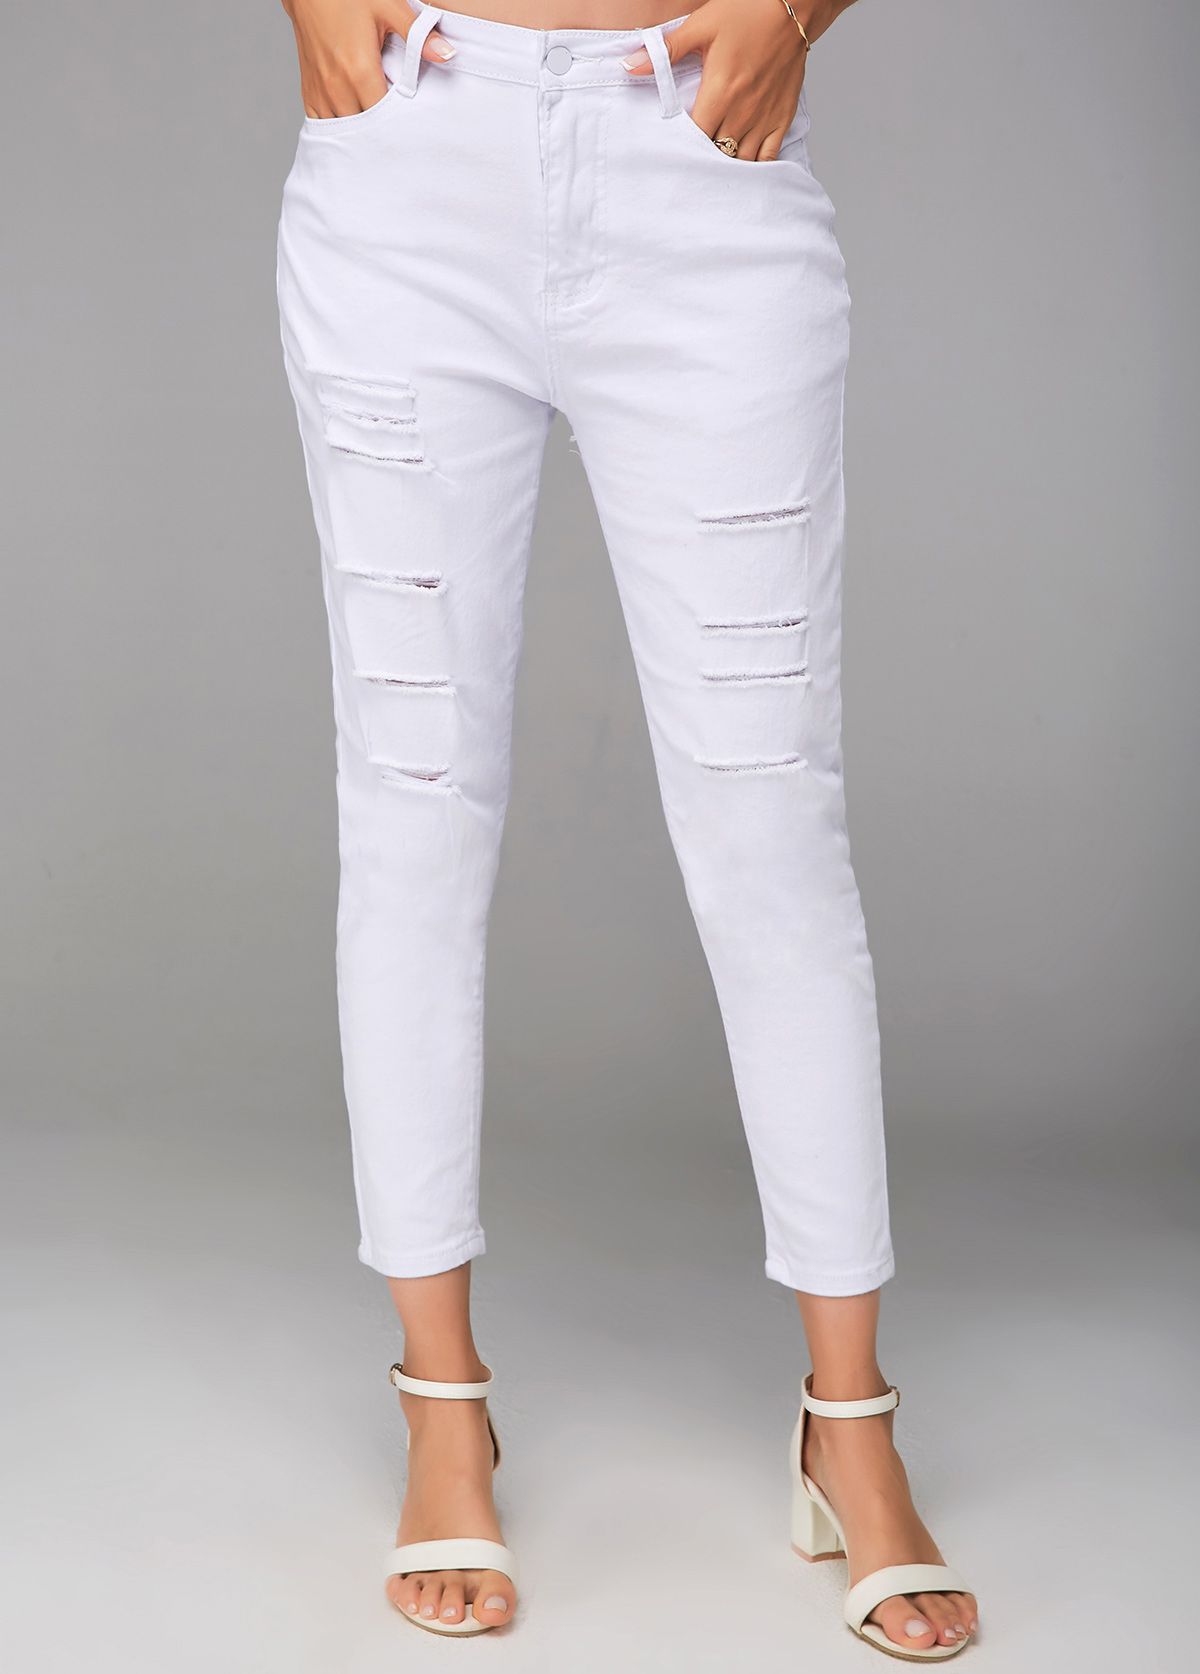 ROTITA White Shredded Cropped Zipper Closure Pants